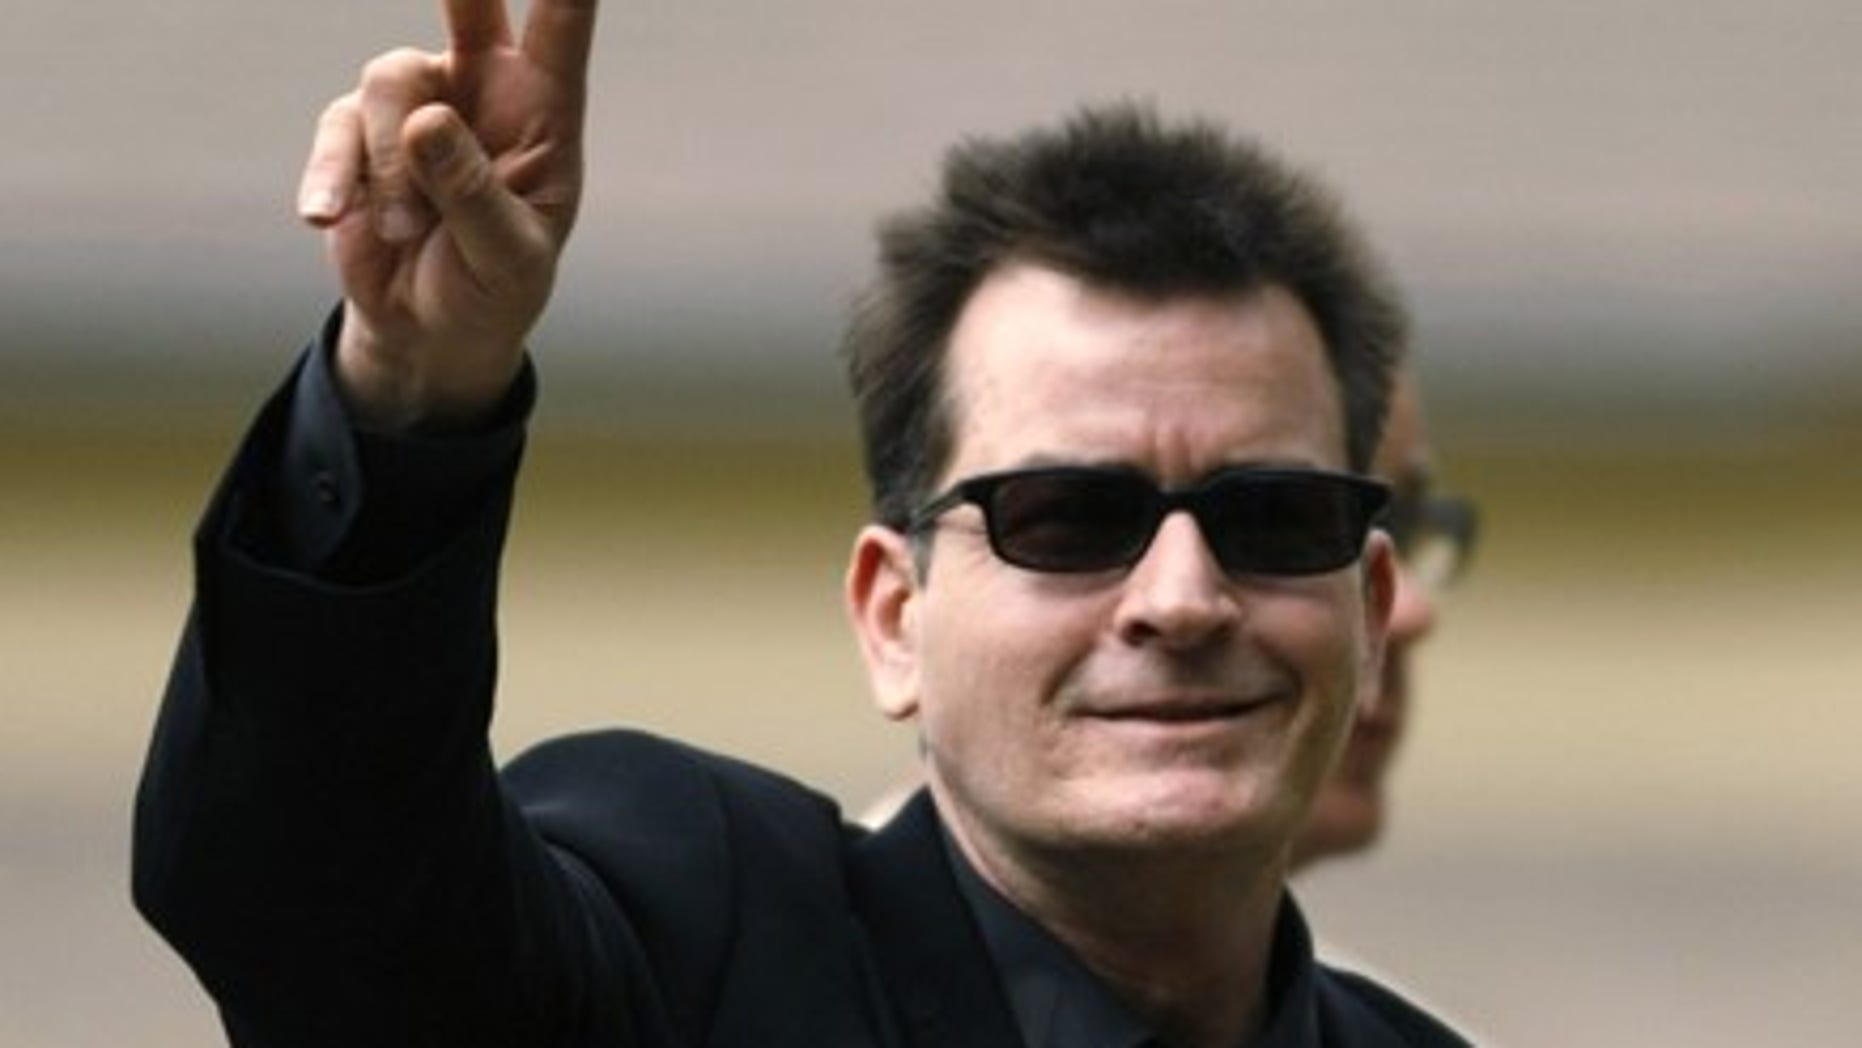 Actor Charlie Sheen arrives for a sentencing hearing at the Pitkin County Courthouse in Aspen, Colorado, on August 2, 2010. Sheen was expected to be sentenced for assaulting his wife during an alcohol-fueled Christmas Day quarrel in Aspen. (Reuters)